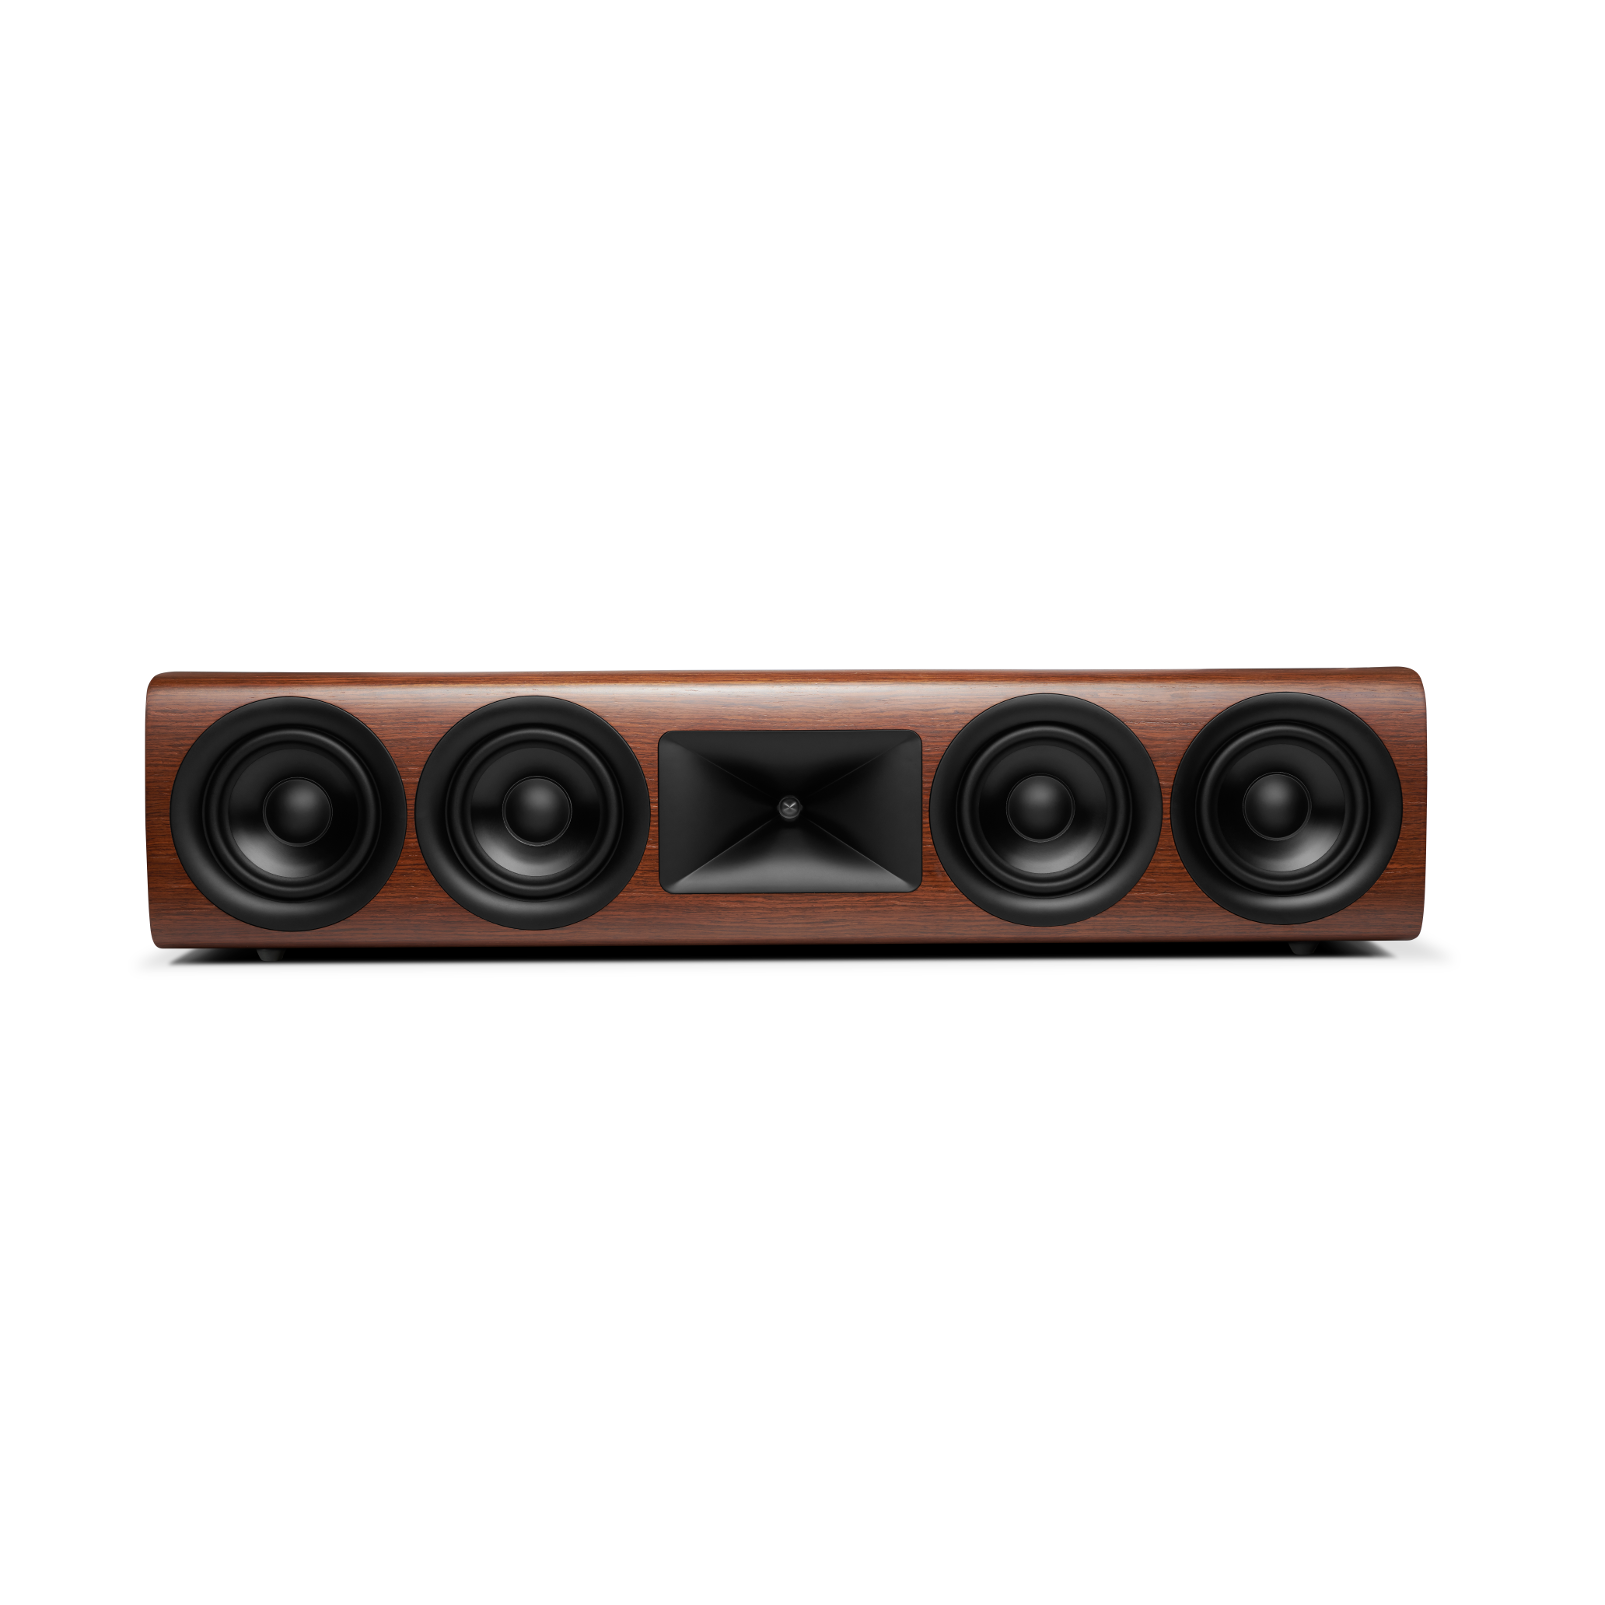 HDI-4500 - Walnut - 2 ½-way Quadruple 5.25-inch (130mm) Center Channel Loudspeaker - Hero